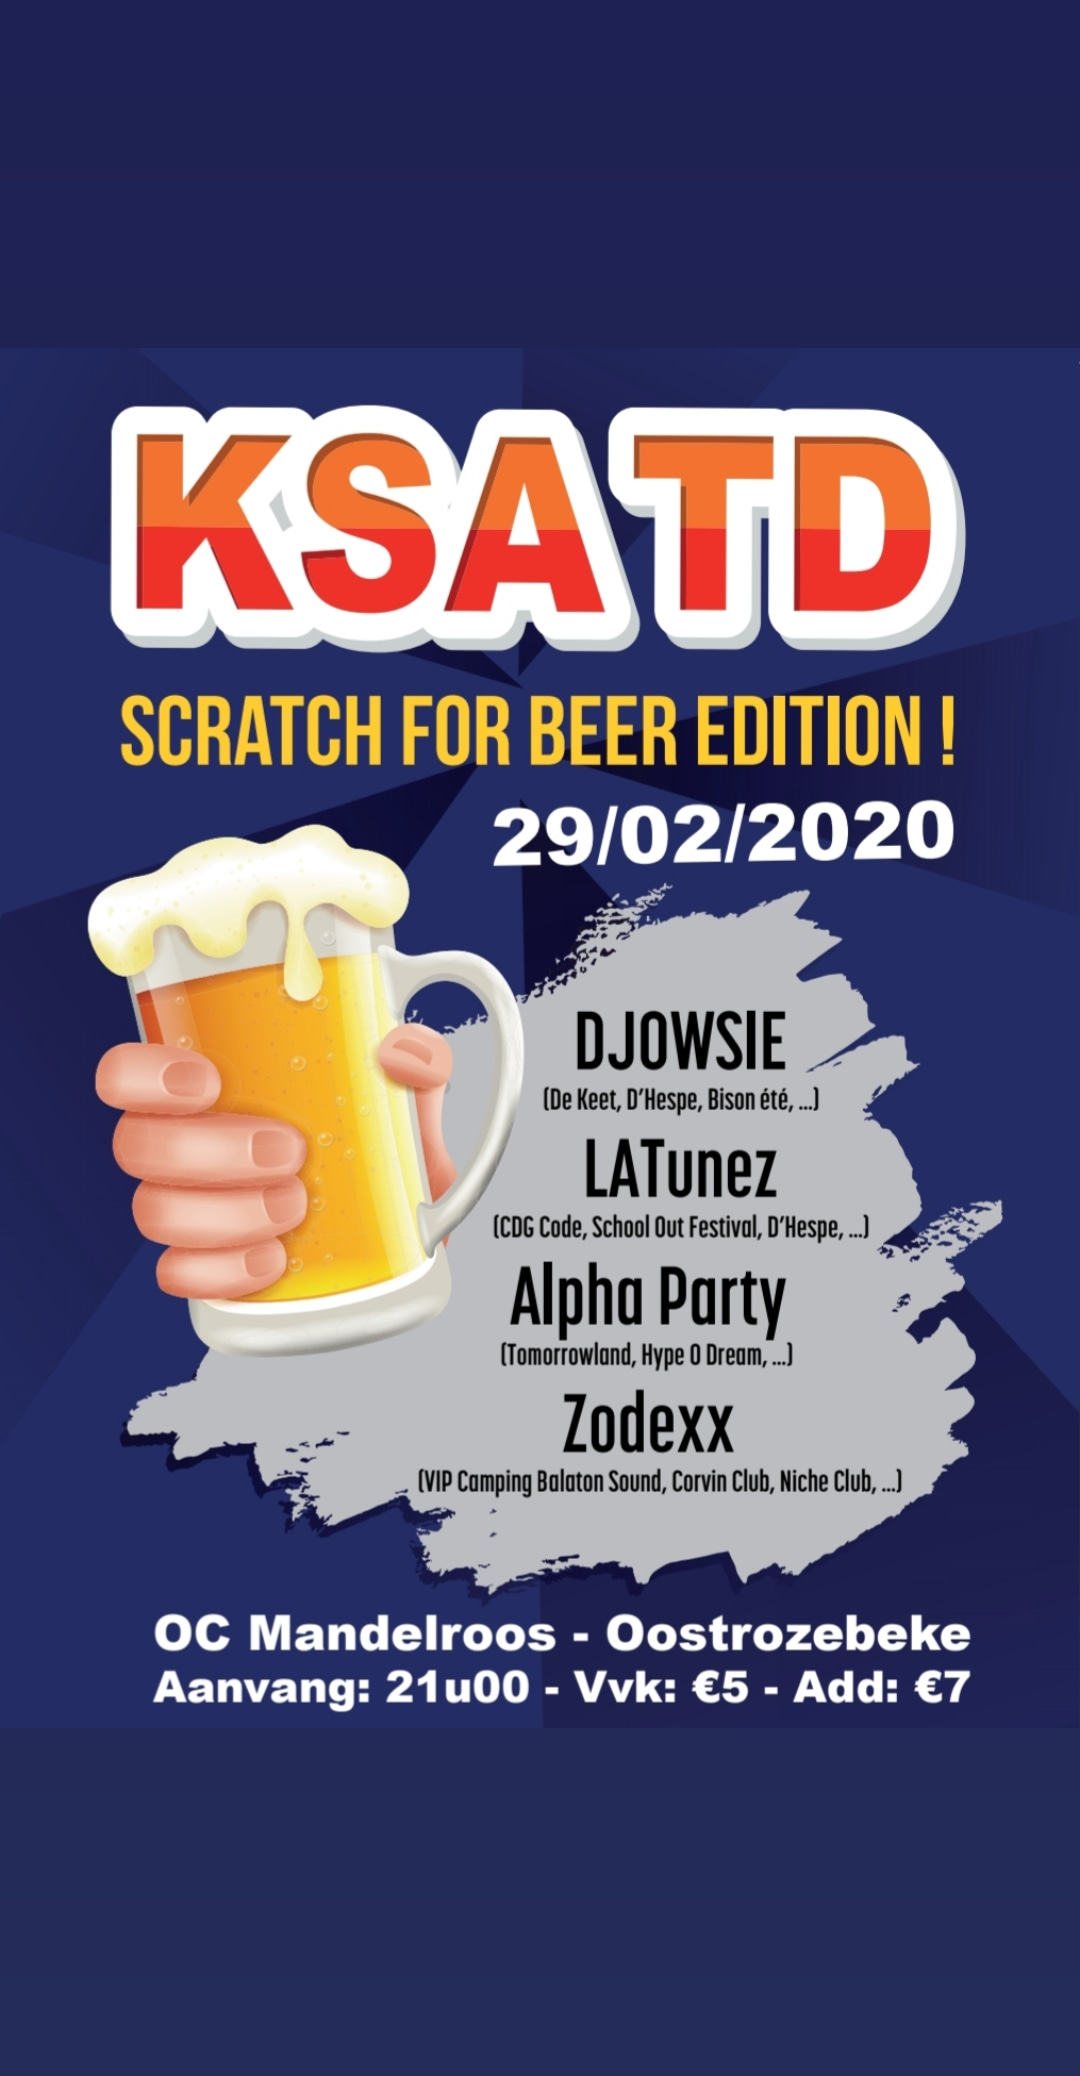 KSA-TD-20---Scratch-For-Beer-Edition